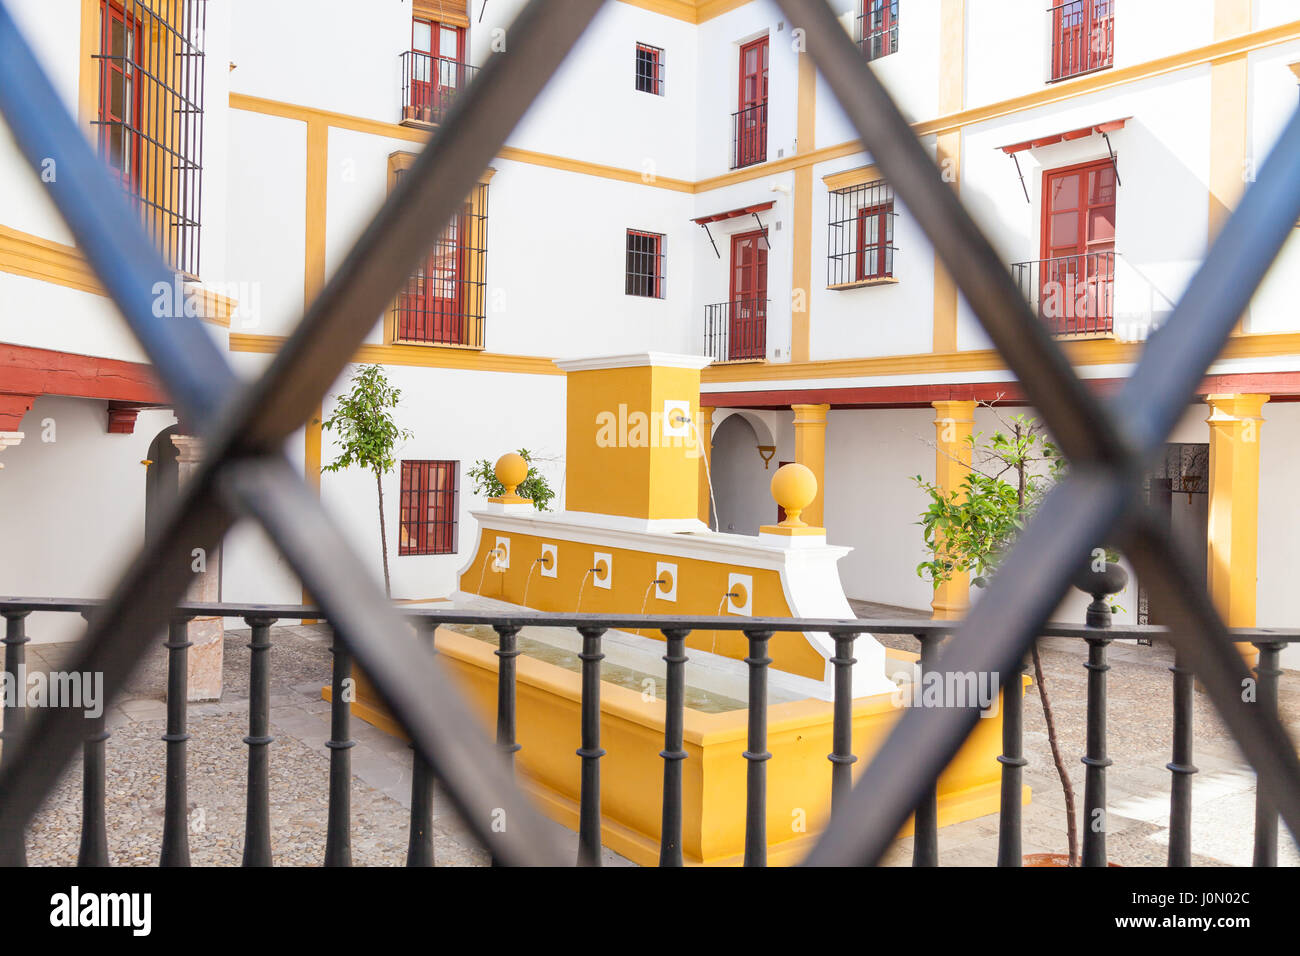 Detail of Plaza de Toros area in Seville - Andalusia Region - Spain - Stock Image